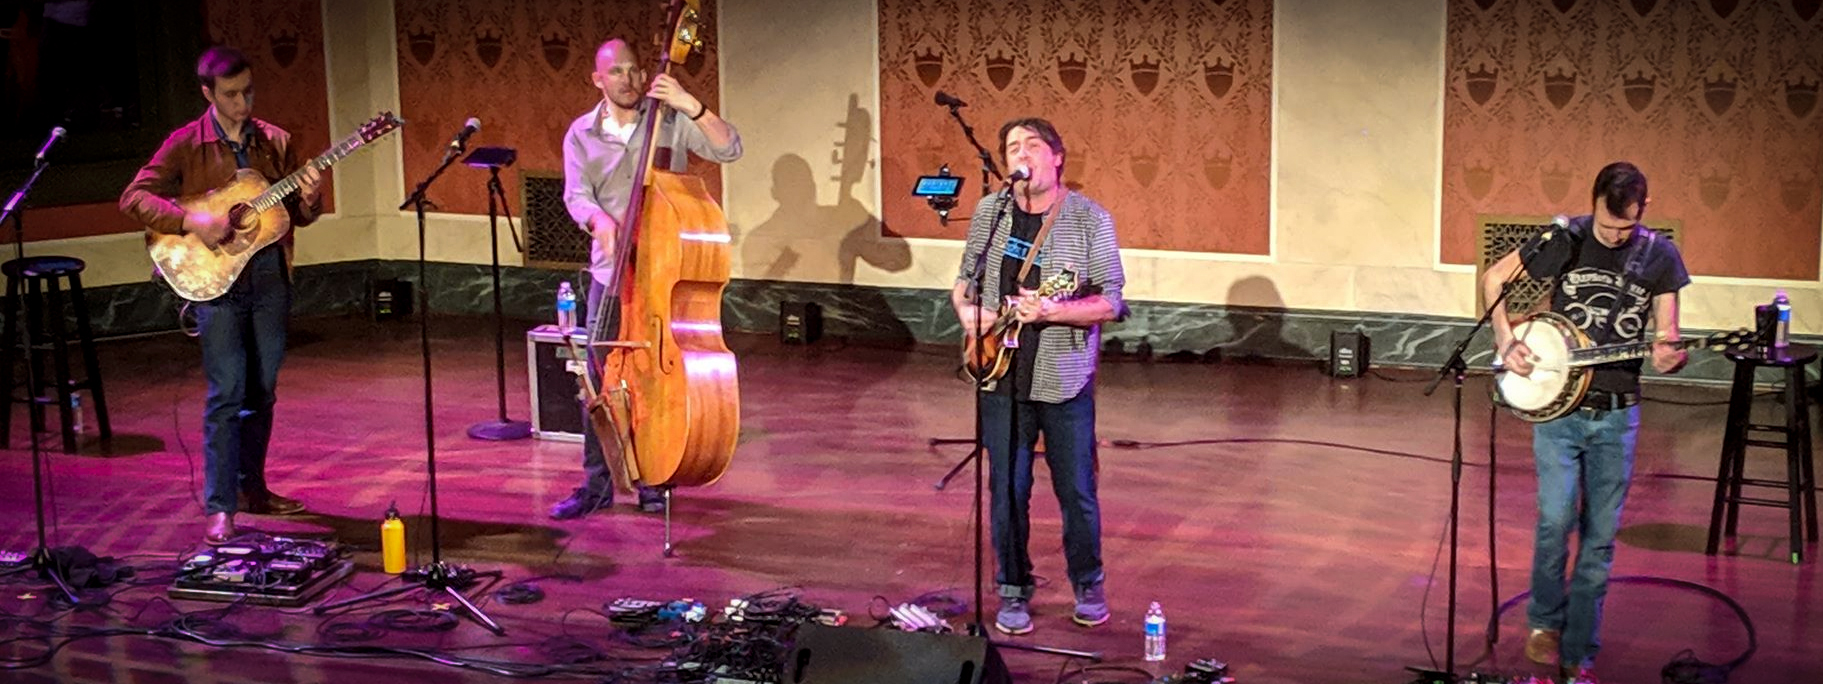 The Travelin' McCourys & Jeff Austin Band brought their Grateful Ball tour to beautiful Memorial Hall in Cincinnati